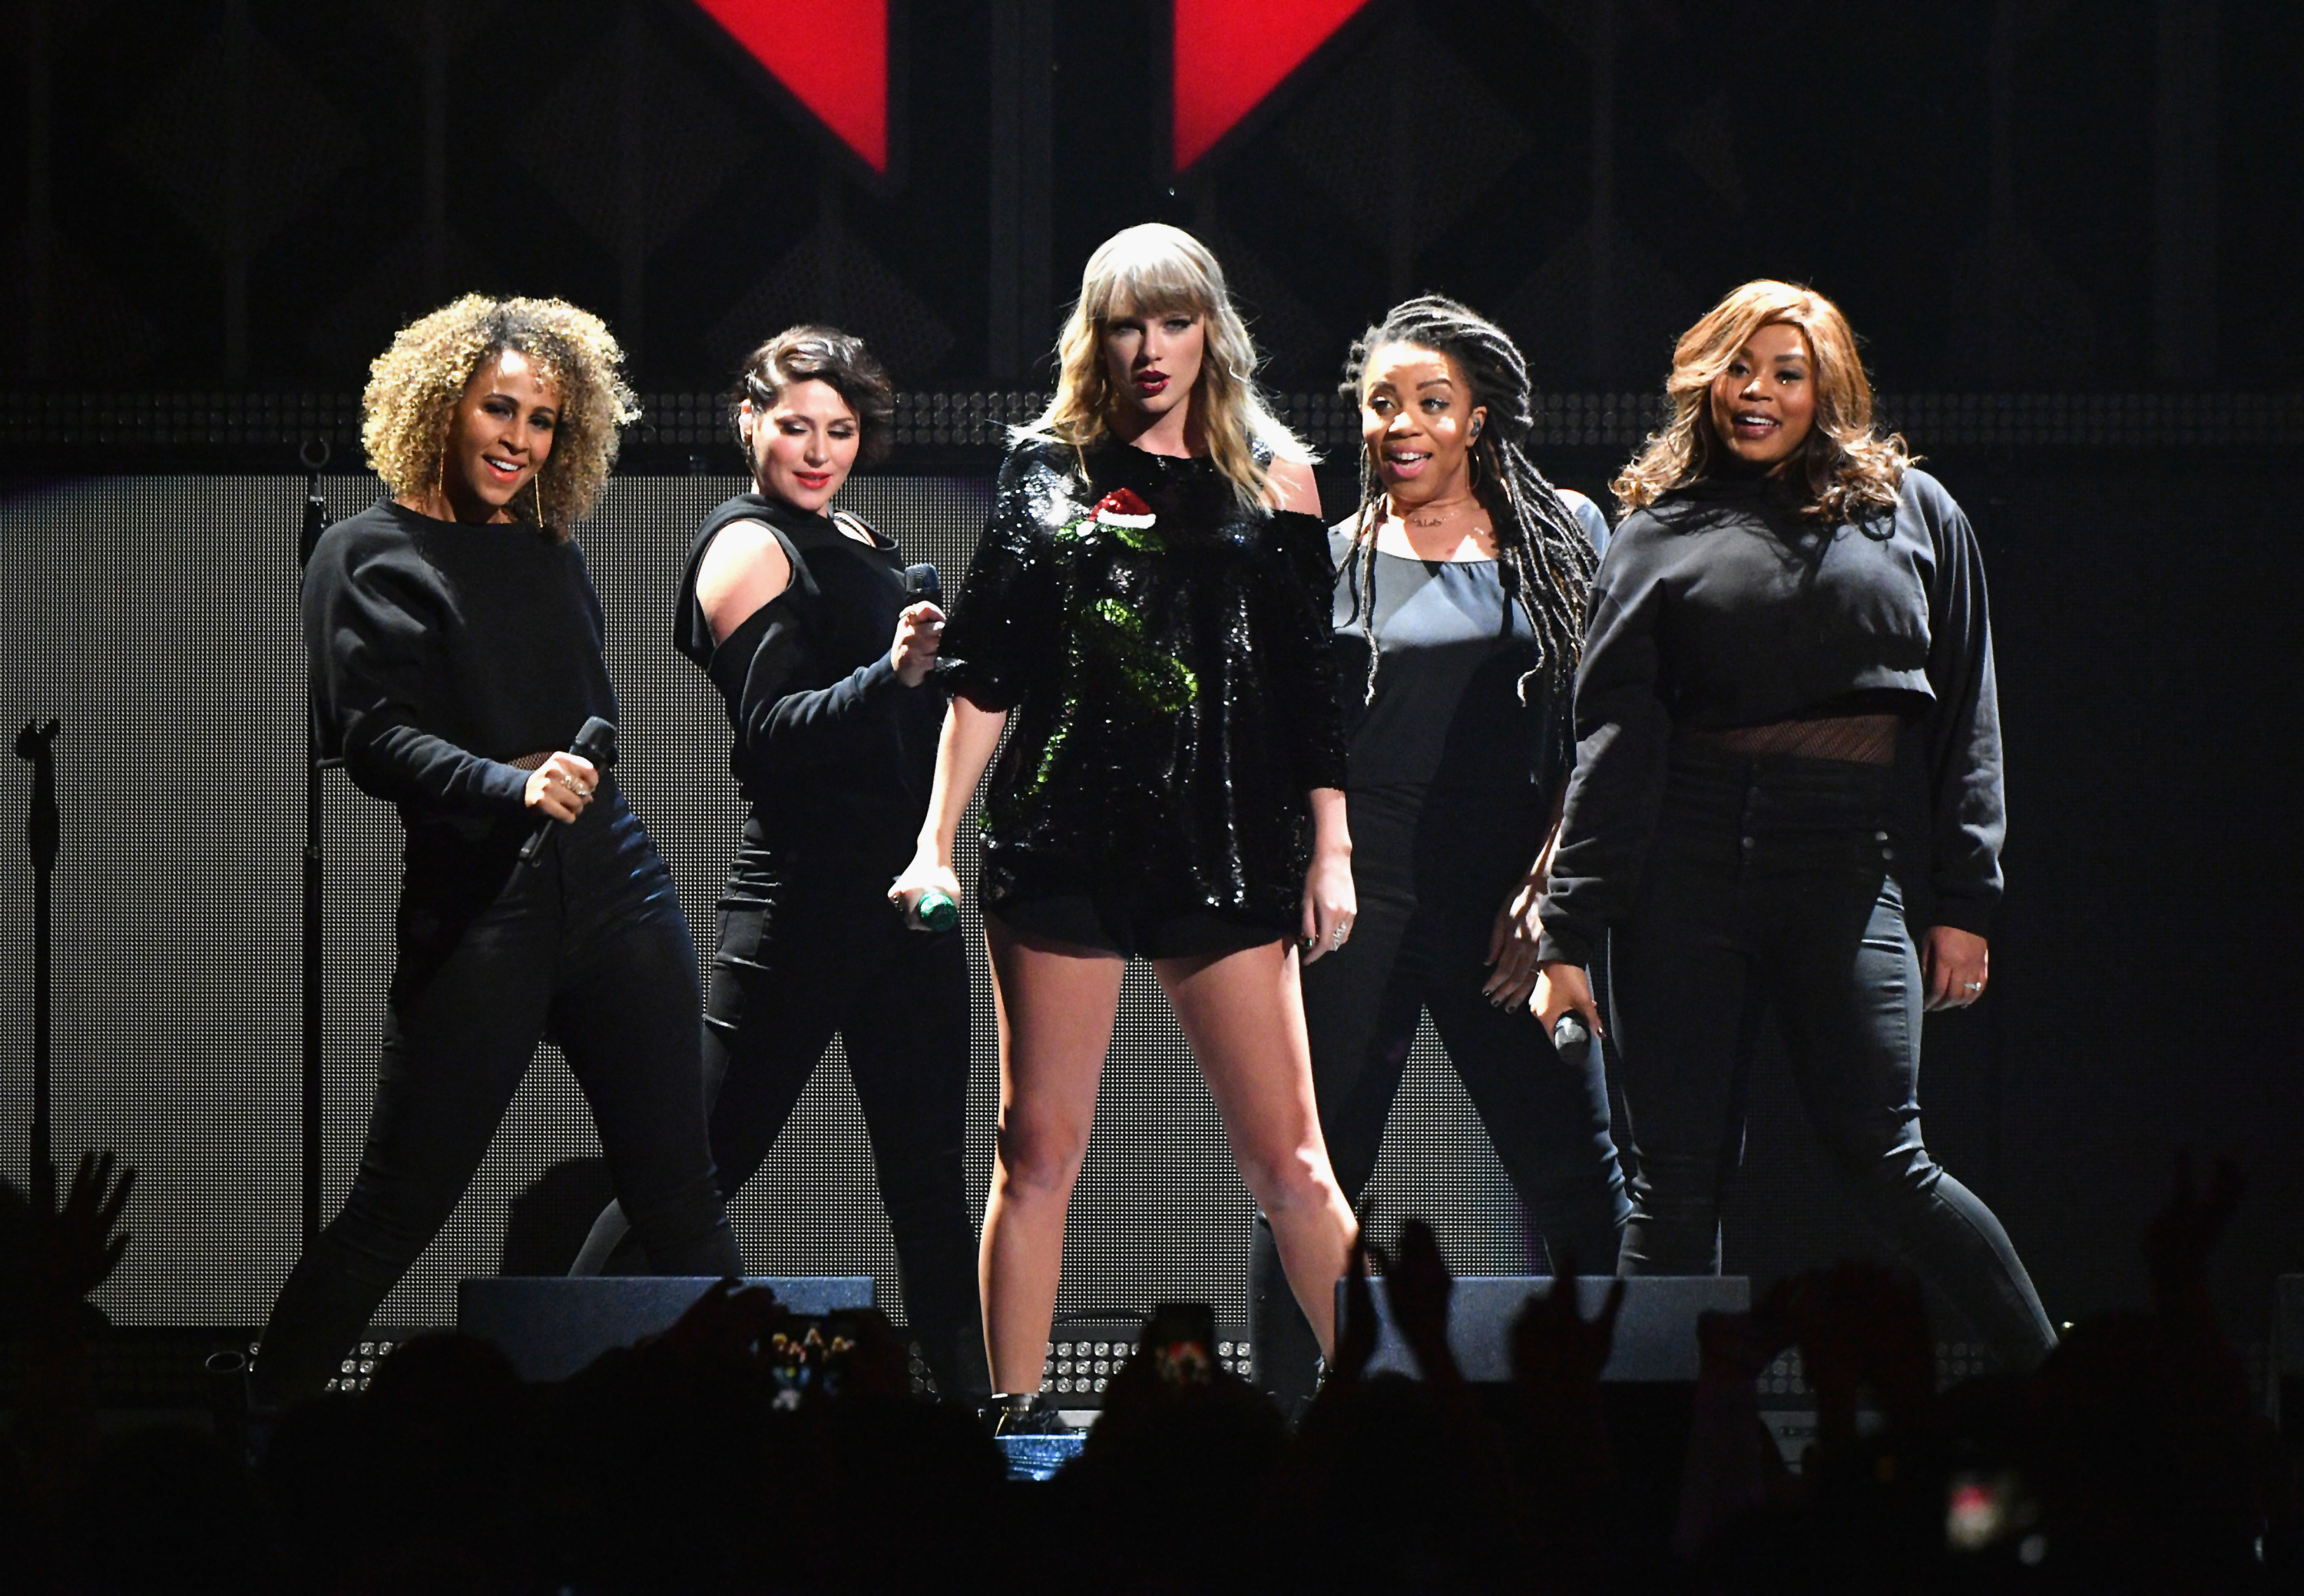 Taylor-Swift-Rocks-The-Stage-At-Jingle-Ball-In-NYC